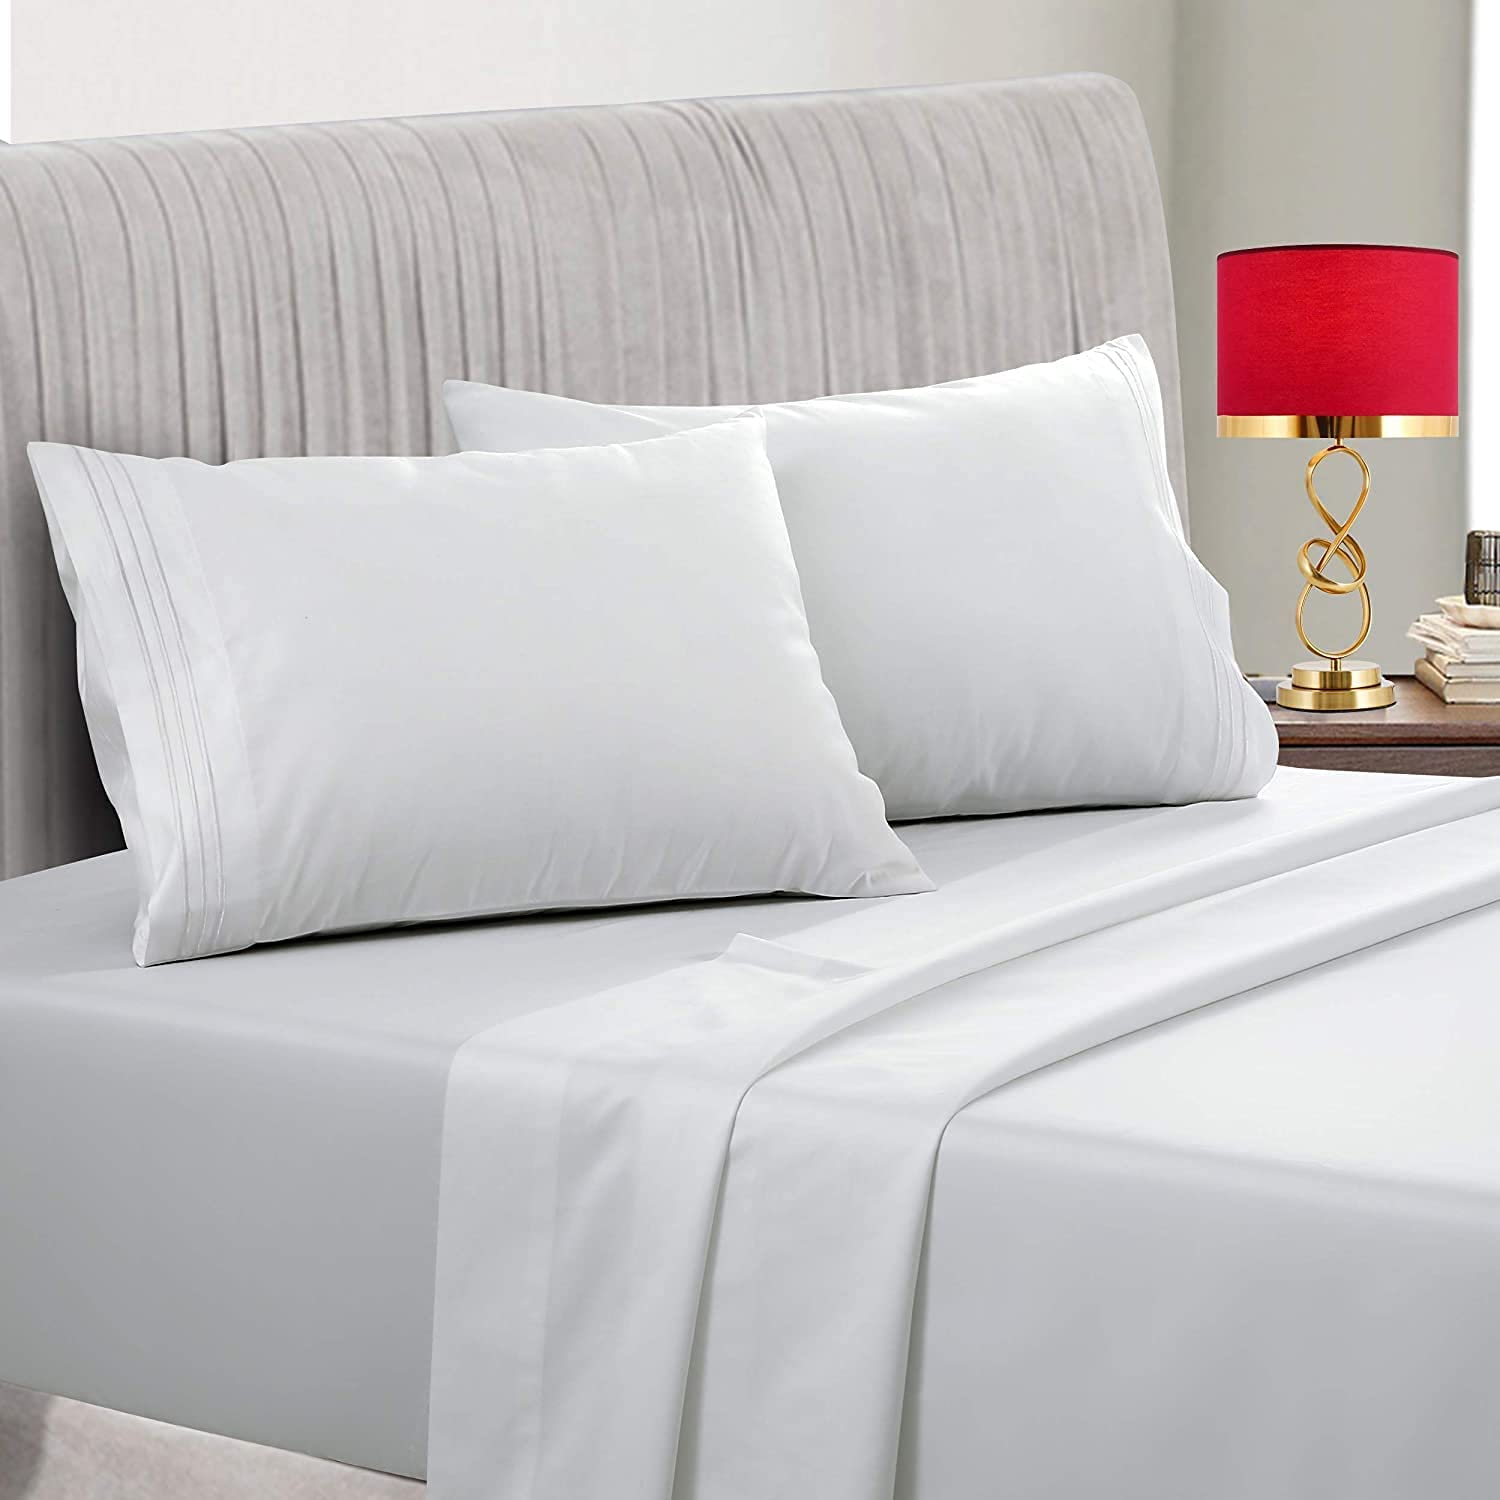 800TC 100% Free Shipping New Cotton Sheets Long-Staple - Queen White Popular standard